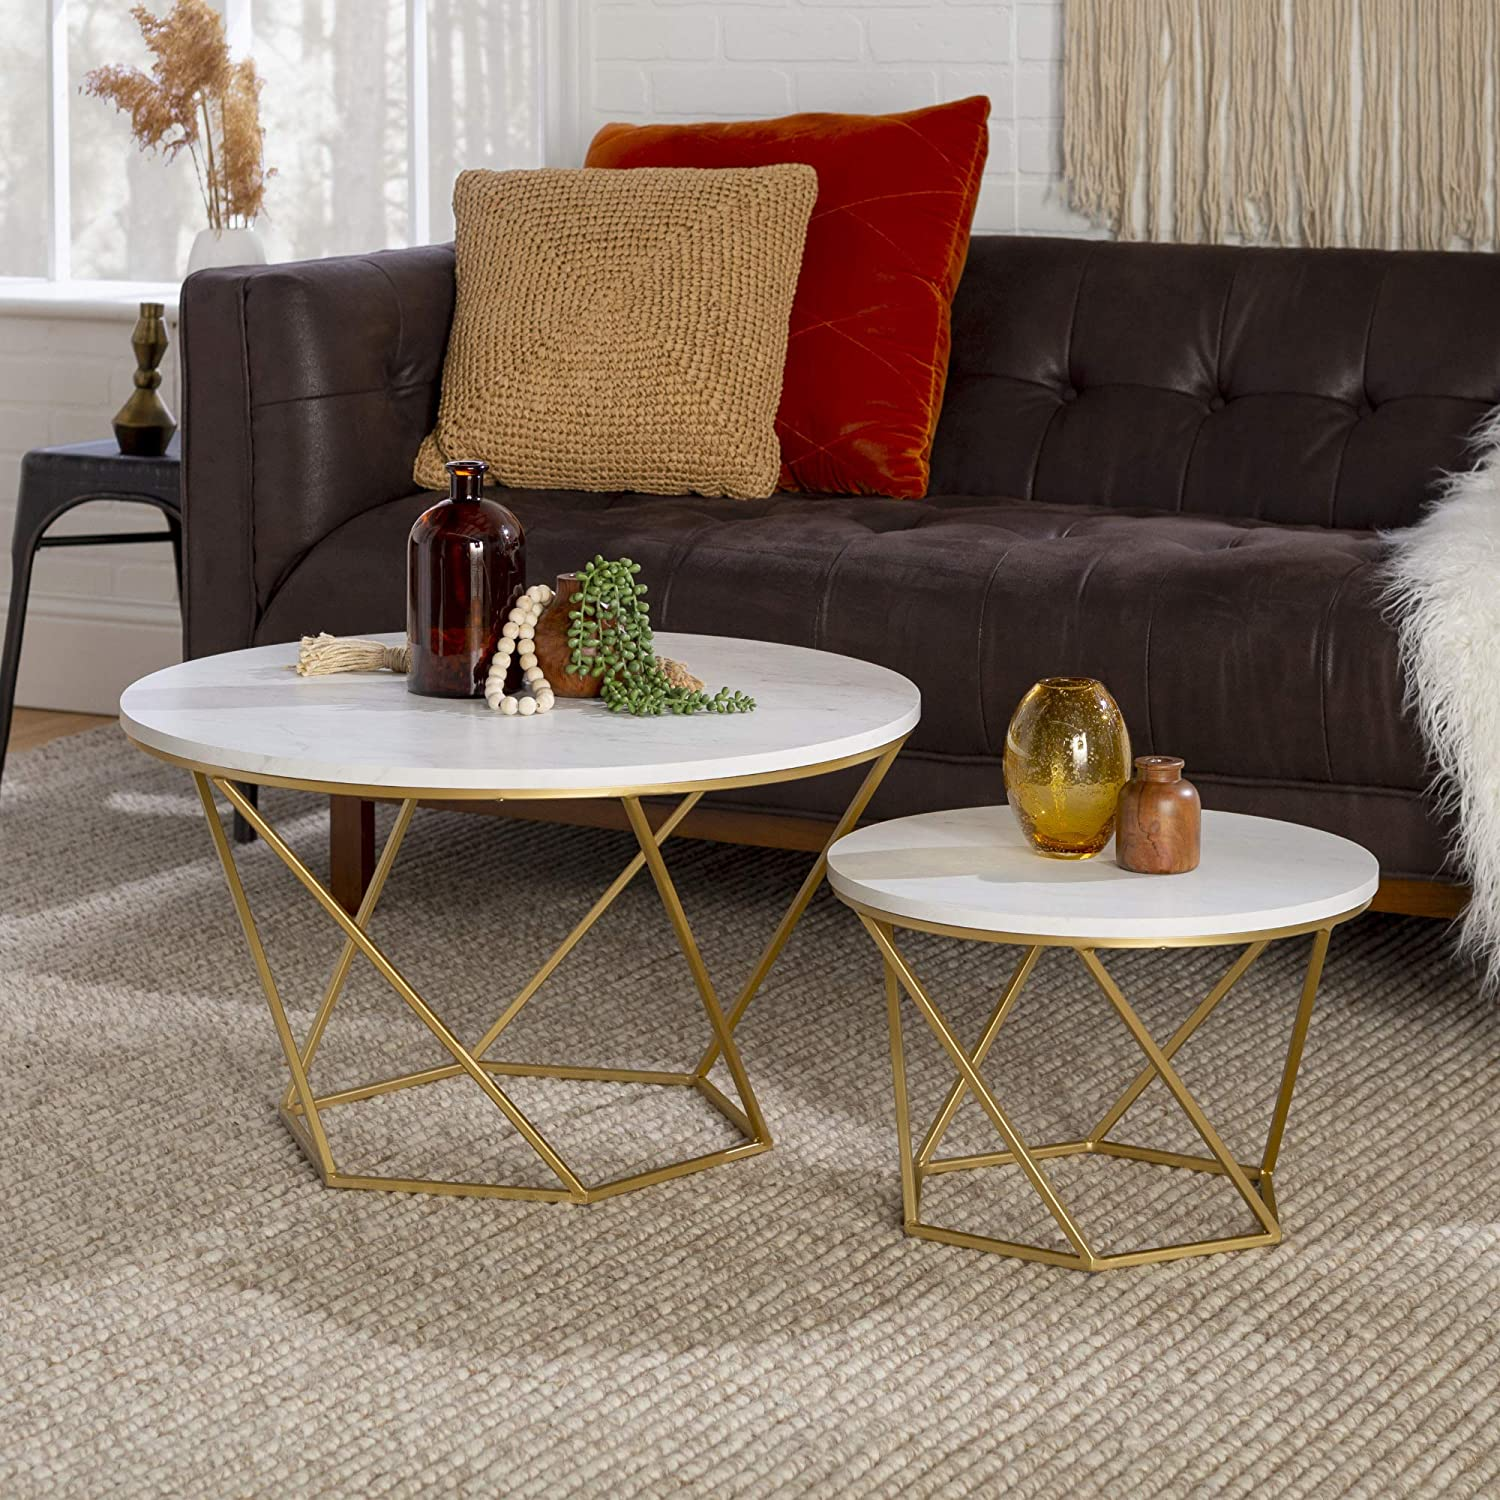 - Amazon.com: WE Furniture Modern Round Nesting Coffee Accent Table